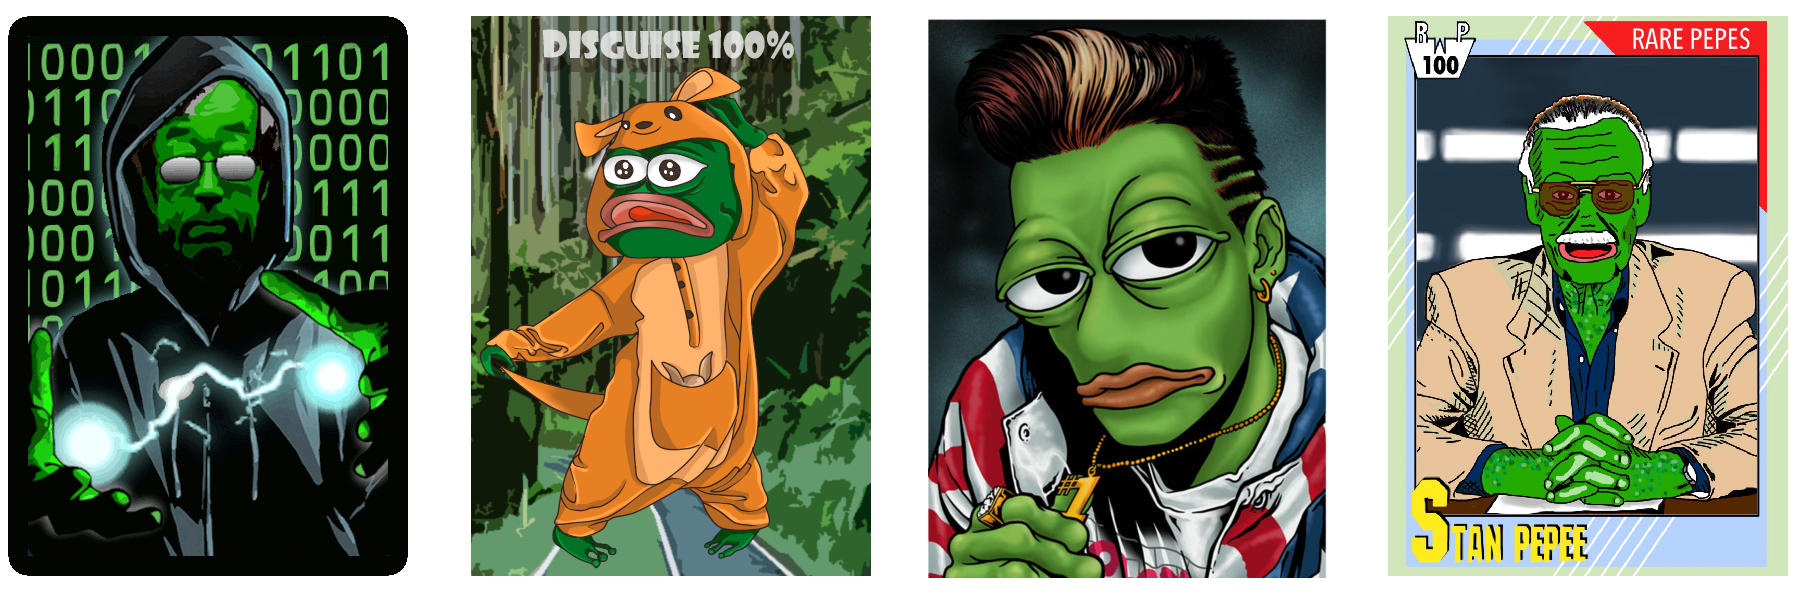 1511411458_166_rare-pepe-blockchain-cards-have-produced-more-value-than-most-icos